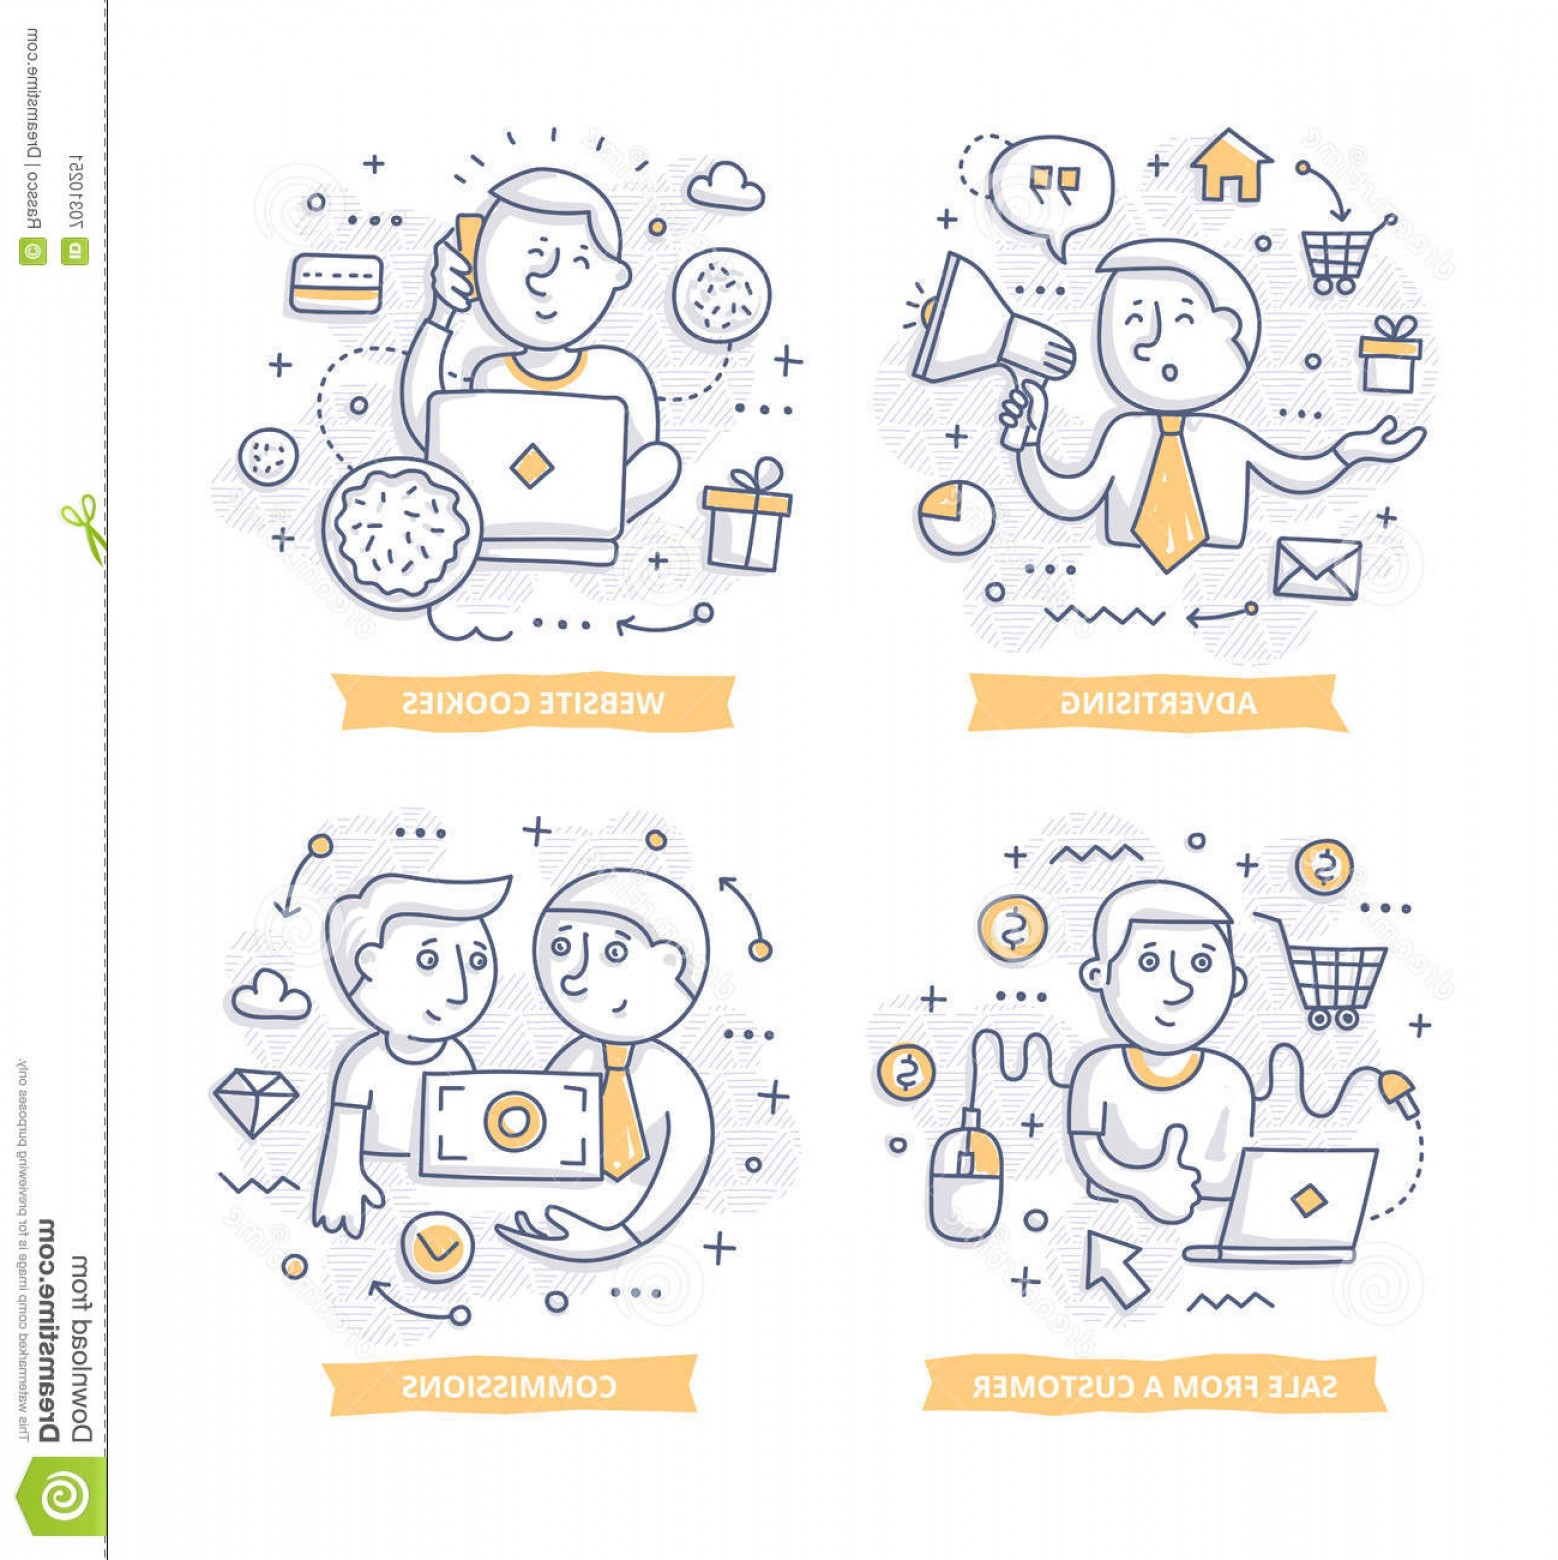 Vector Marketing Commission: Stock Illustration Affiliate Marketing Doodle Illustrations Promoting Companies Products Commission Concepts Telling Brand Story Image